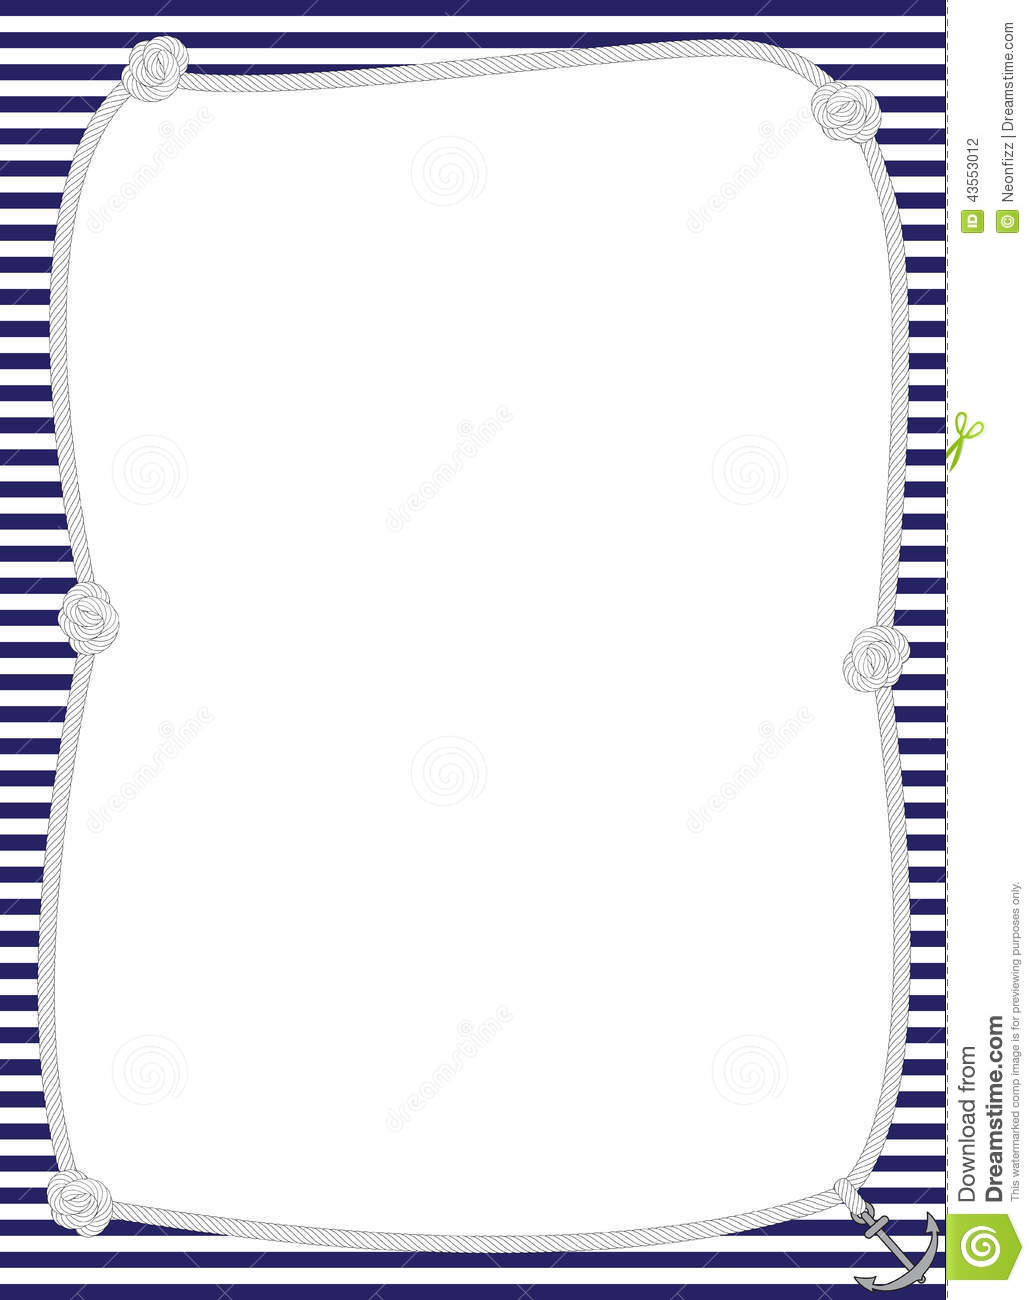 Rope Border With Navy Striped Background For Nautical Themed Designs